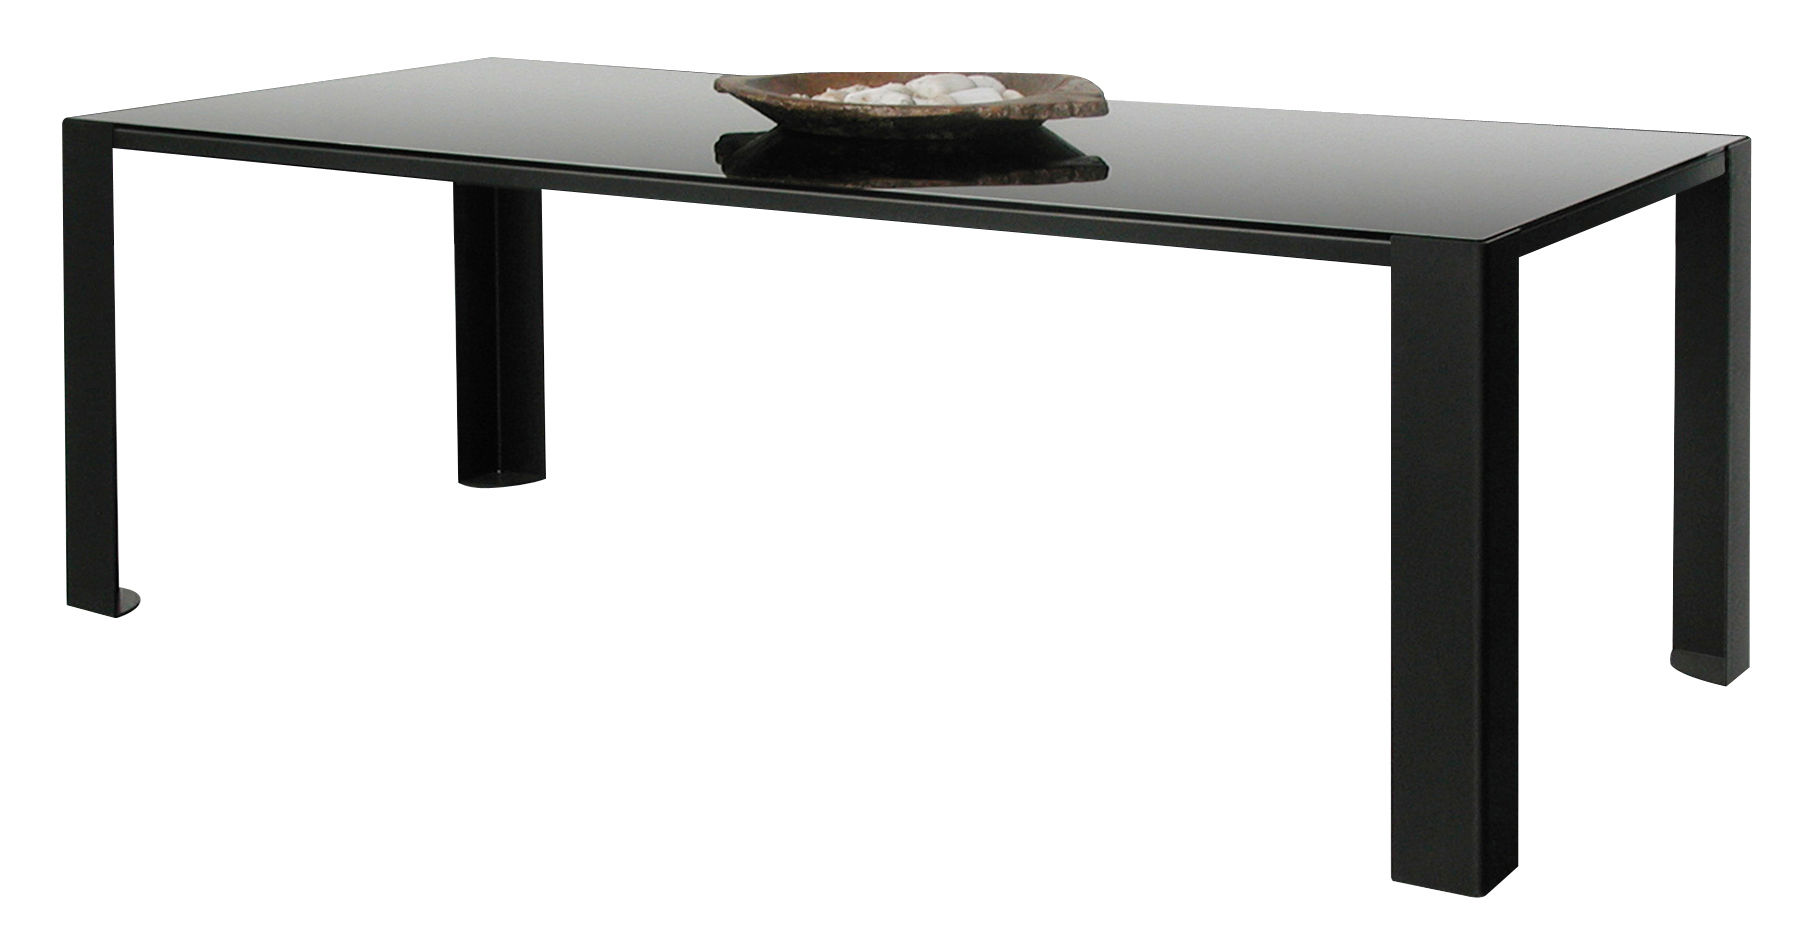 Furniture - Dining Tables - Big Irony Black Glass Rectangular table - Black glass table top - L 200 cm by Zeus - Black glass top / bronze mirror - Glass, Painted steel